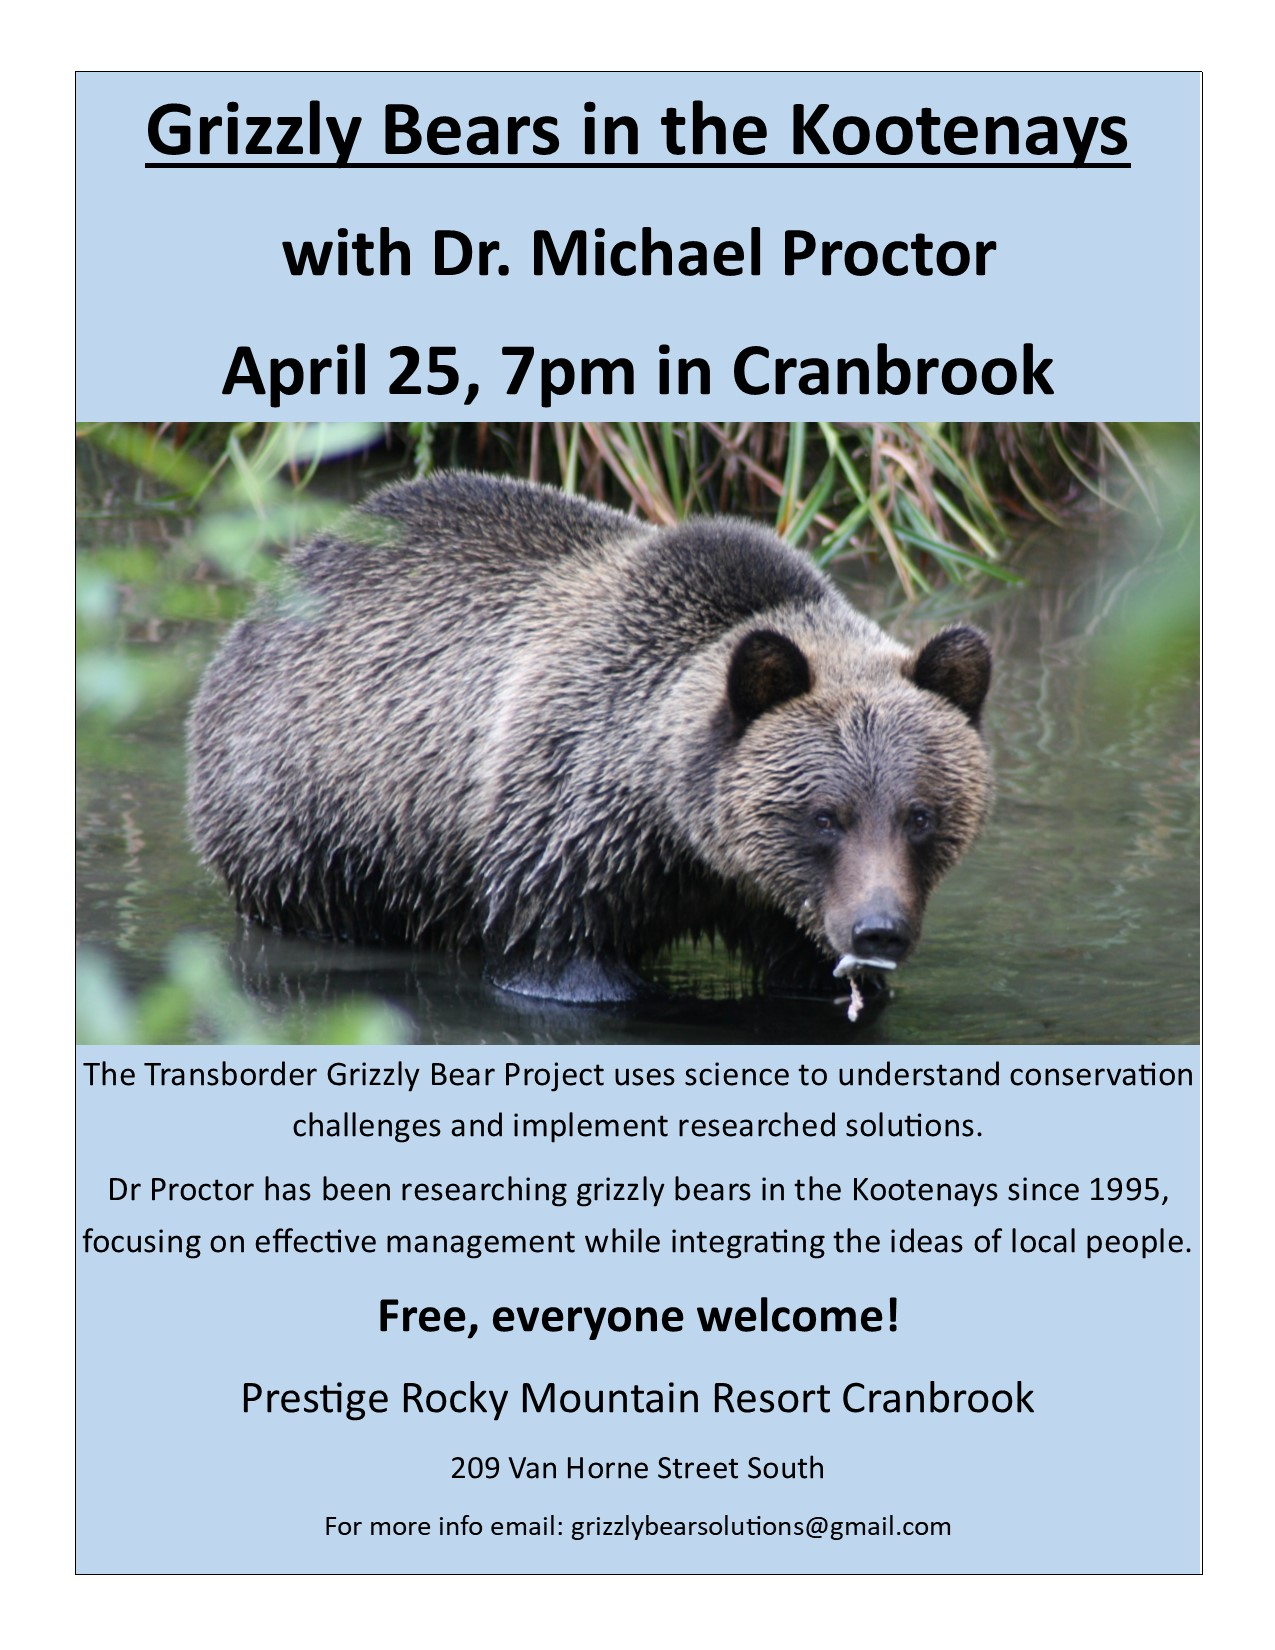 Grizzly Bears in the Kootenays Cranbrook Apr 25-1